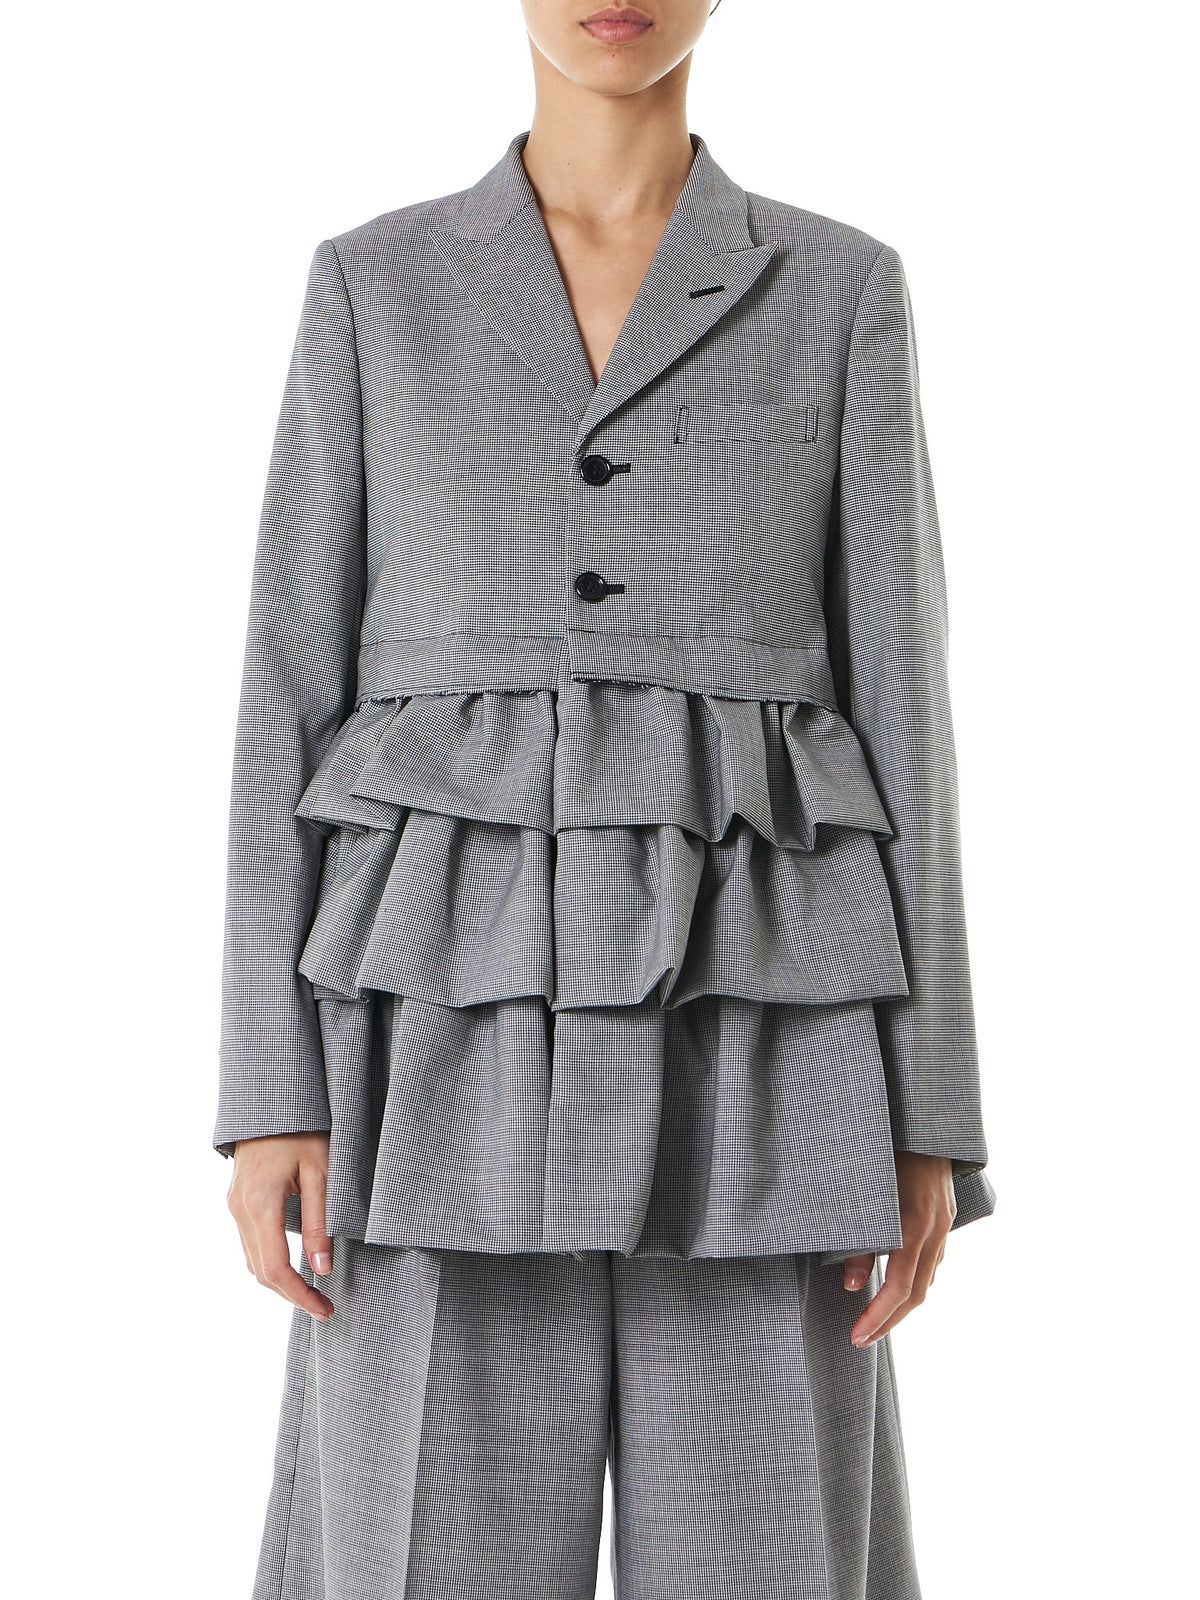 Pleated Blazer Hybrid (GS-J002-051-1) - H. Lorenzo